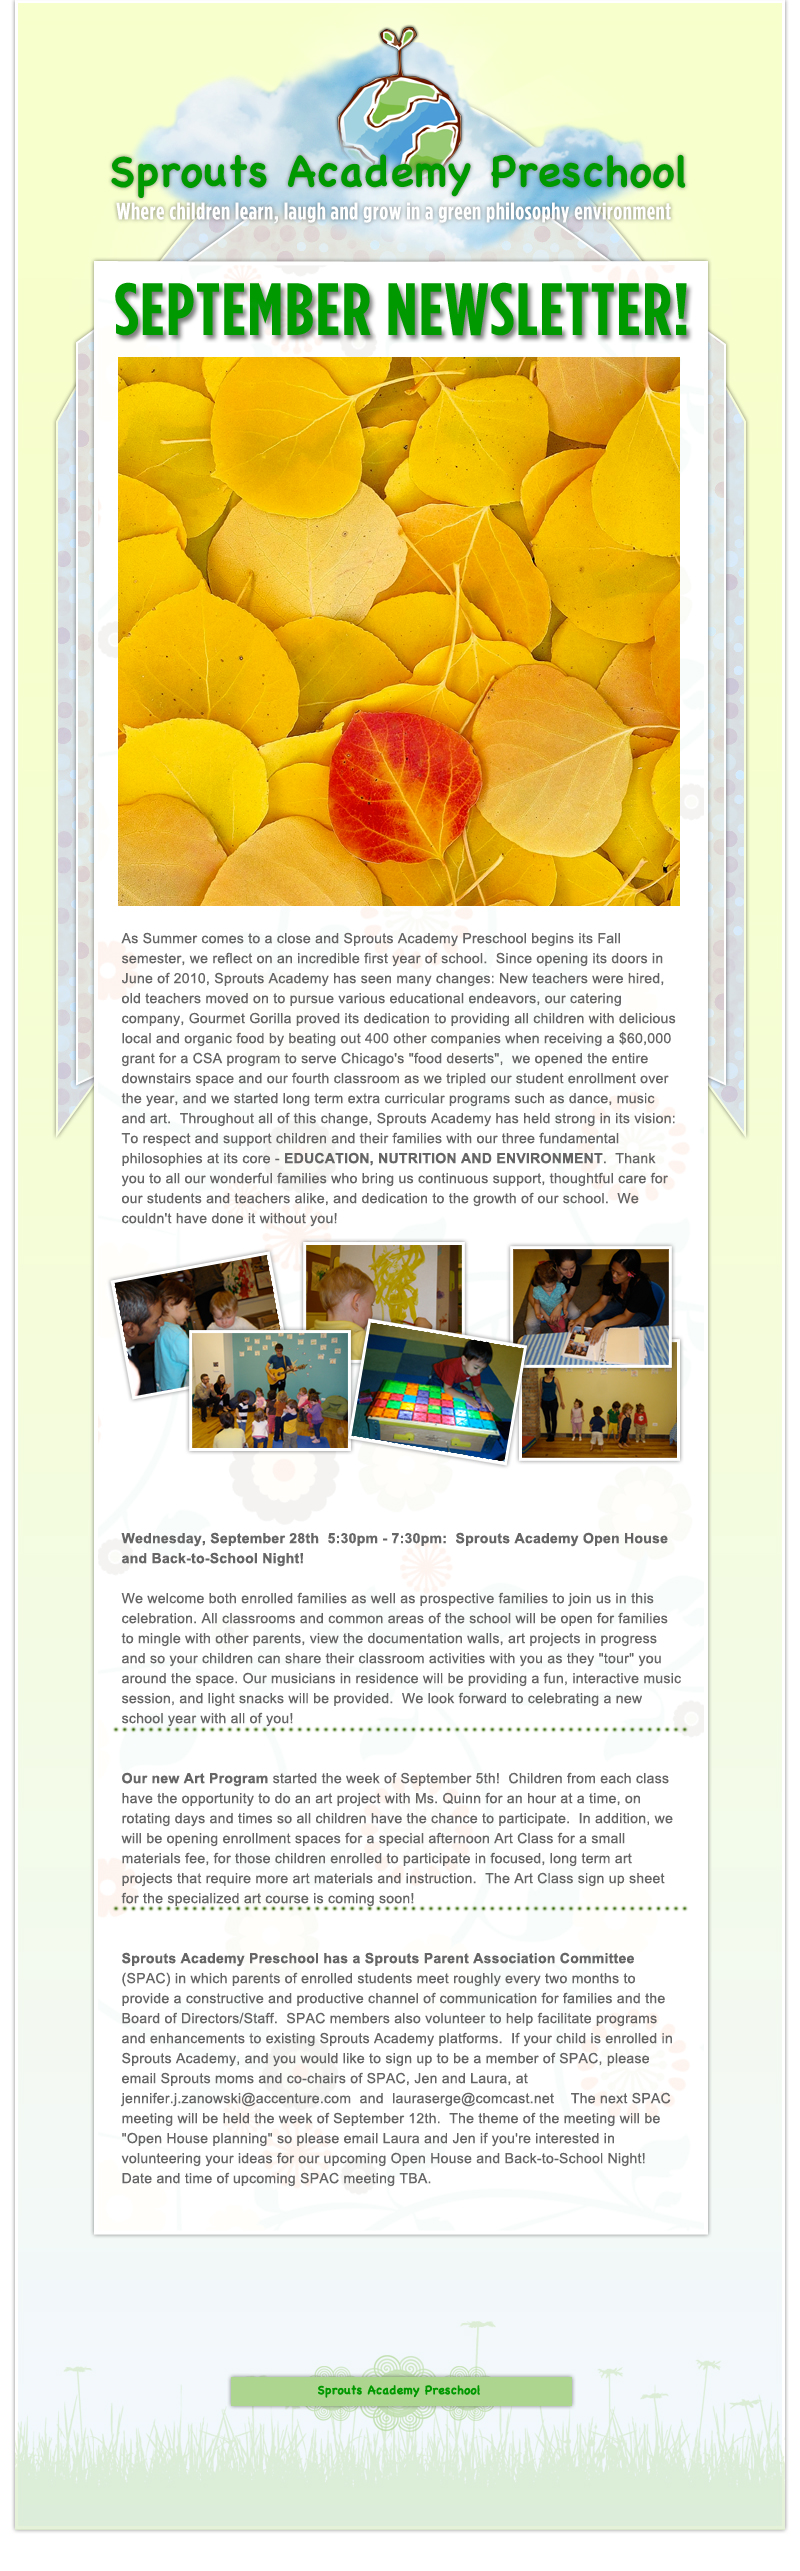 Sprouts Academy Preschool Chicago - September Newsletter